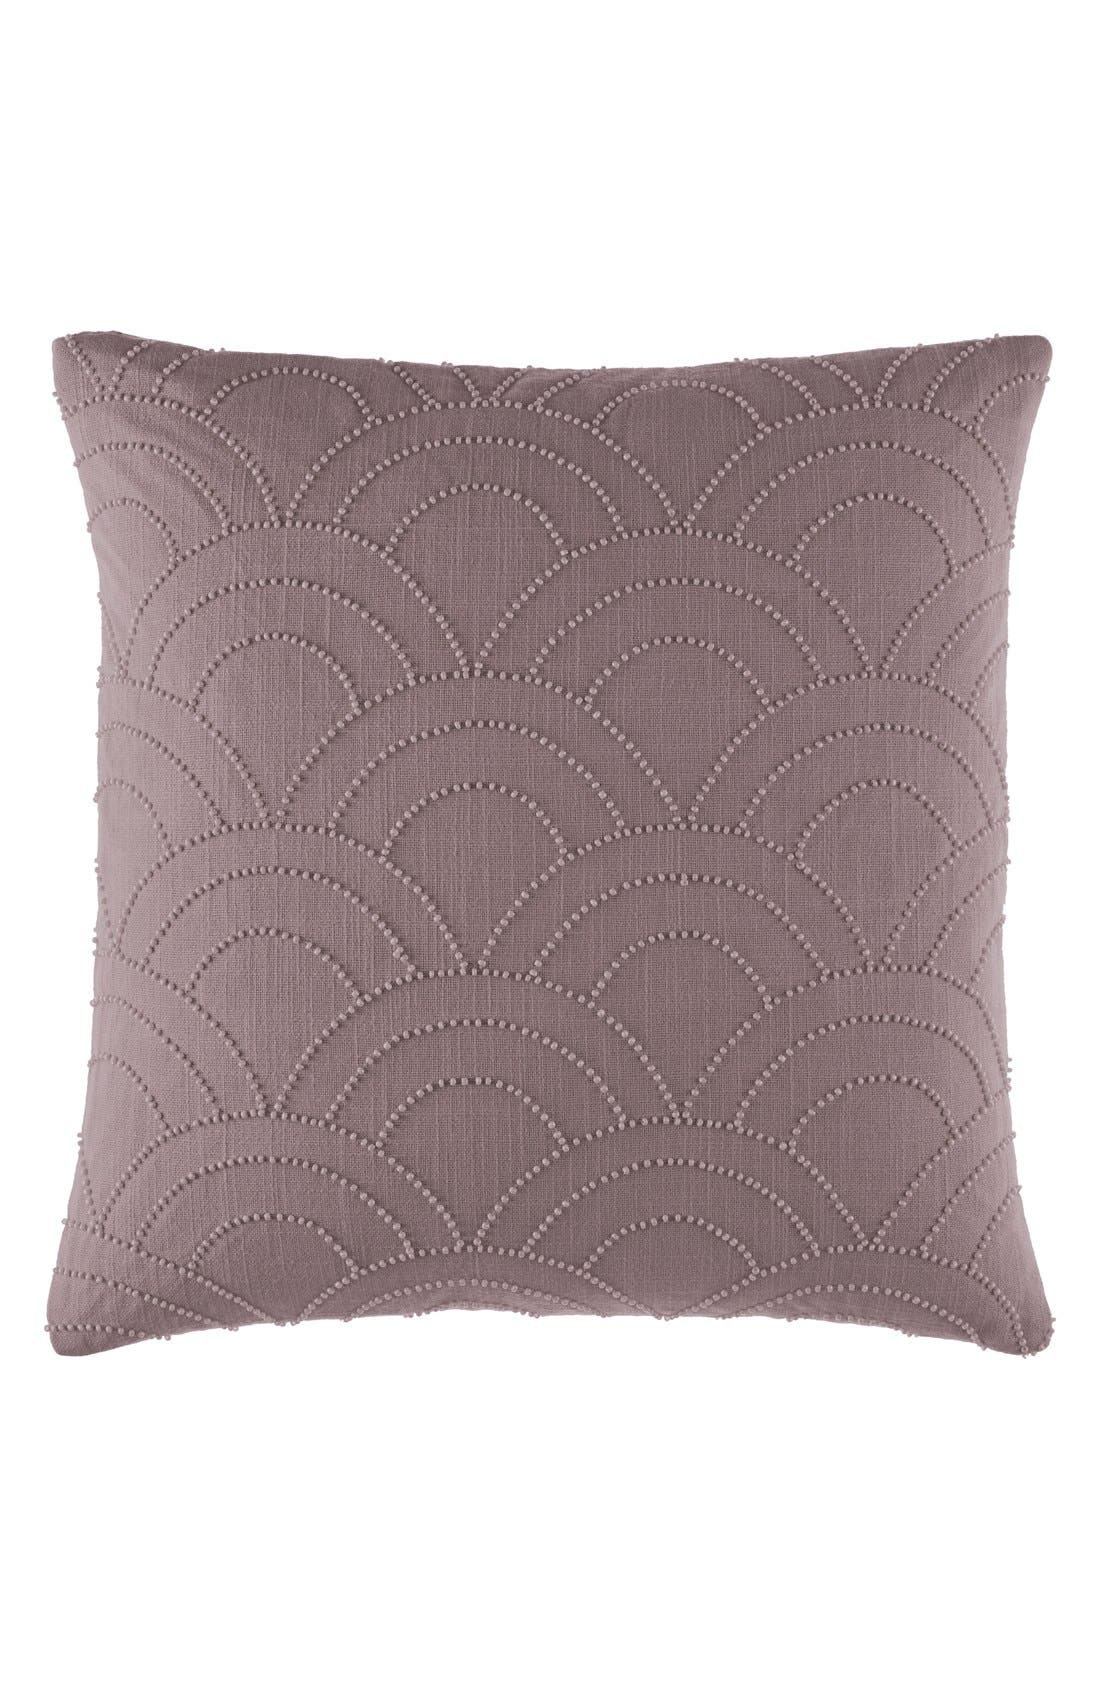 'Metro Adrian' Beaded Pillow,                         Main,                         color, Plum